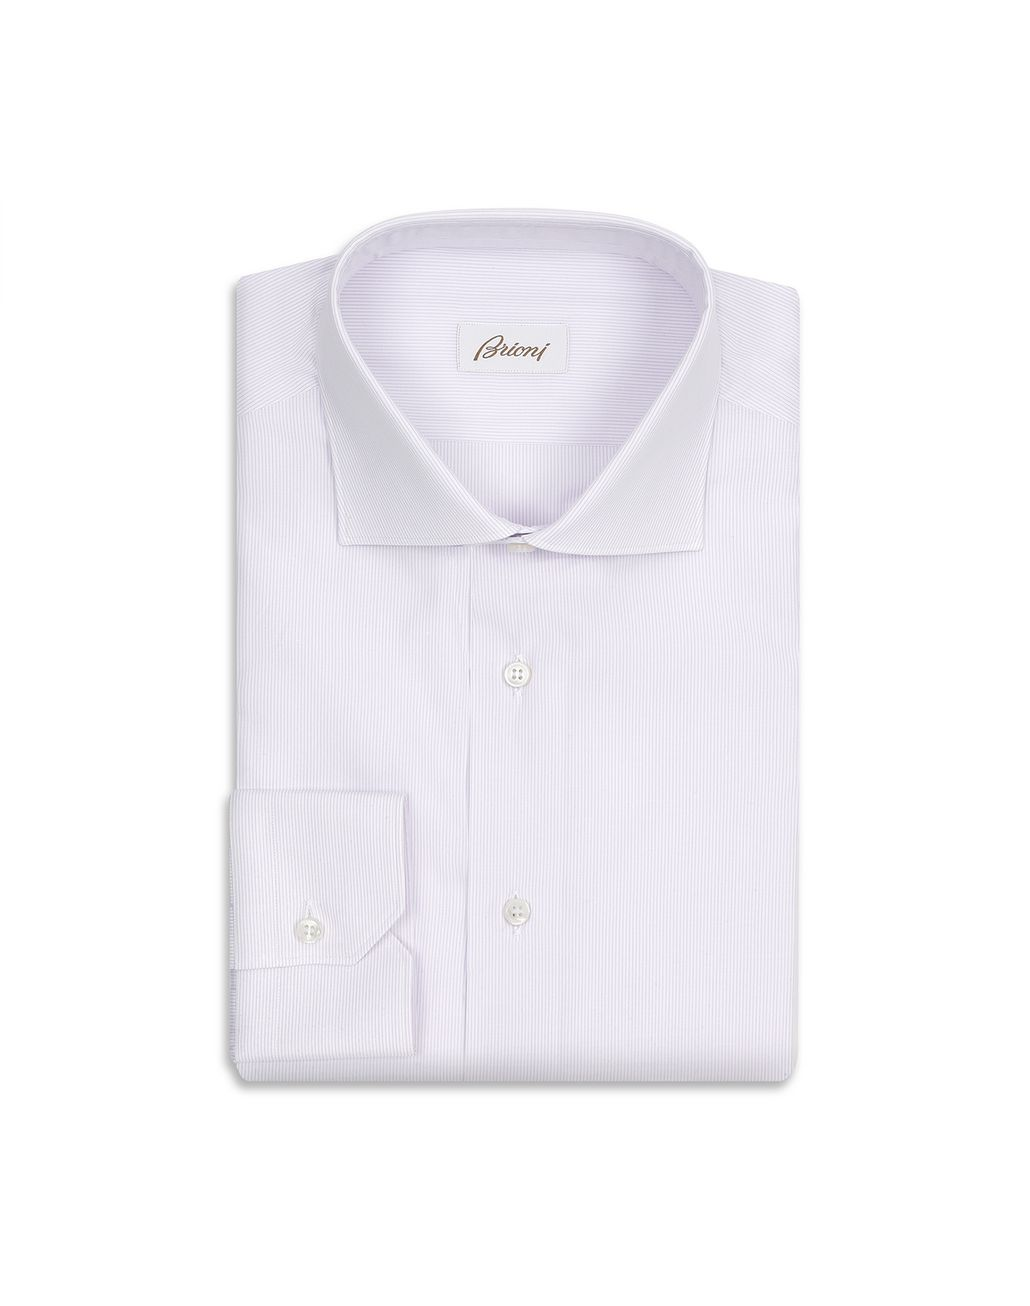 BRIONI Lilac and White Striped Formal Shirt Formal shirt [*** pickupInStoreShippingNotGuaranteed_info ***] f